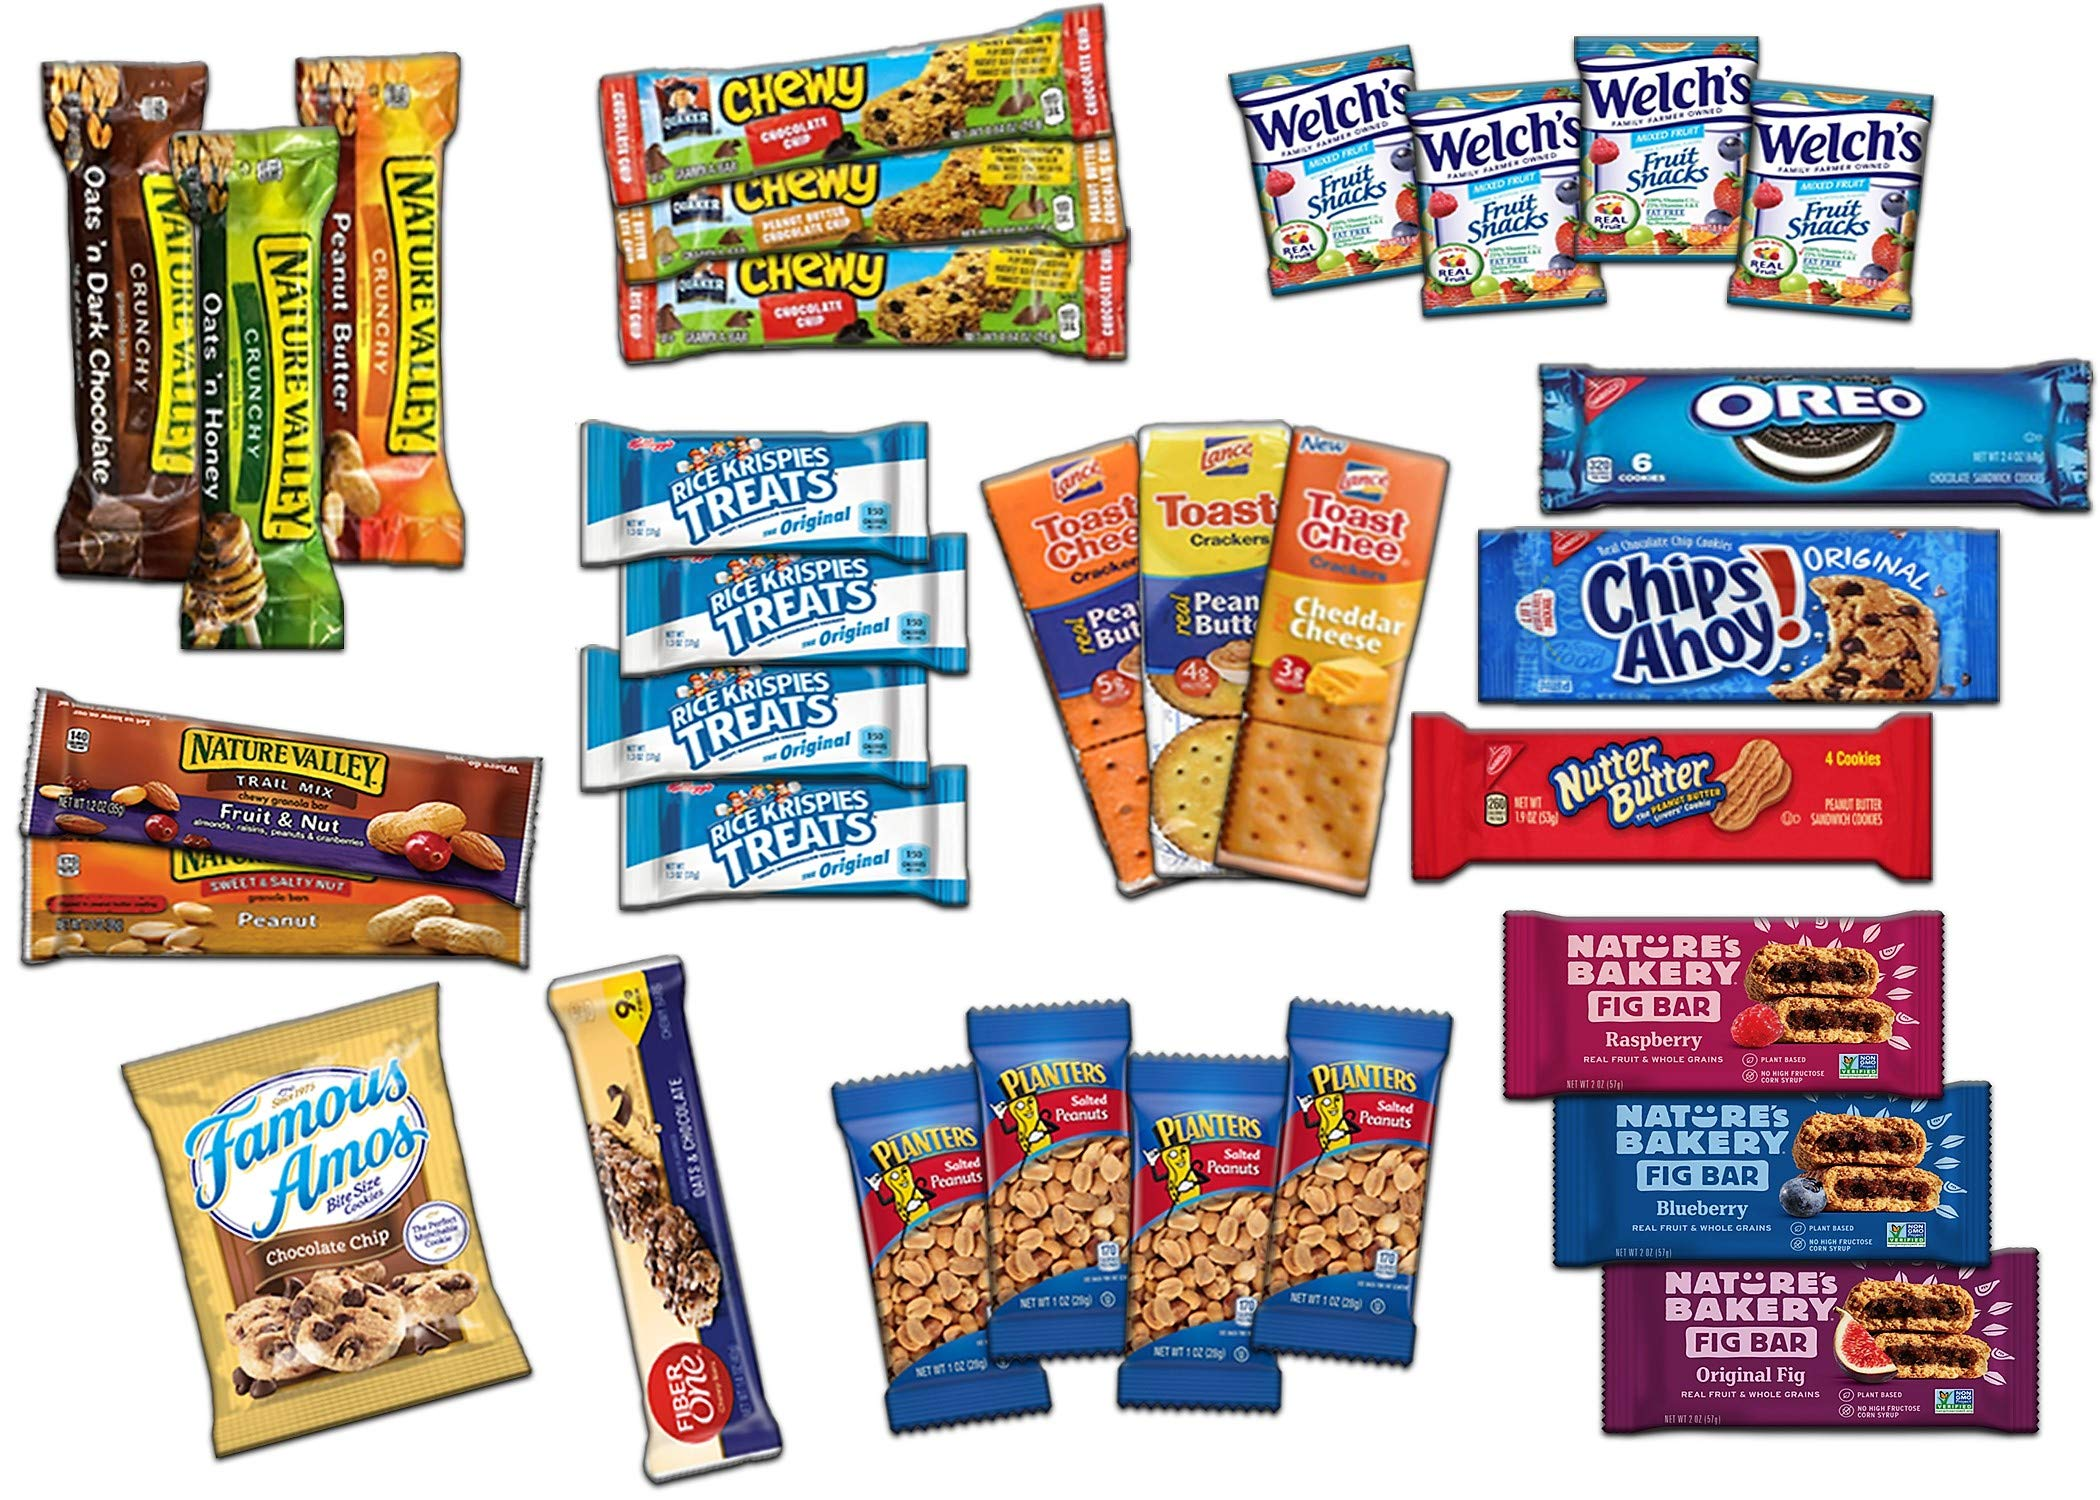 Ultimate Snack Assortment Care Package - Chips, Crackers, Cookies, Nuts, Bars - School, Work, Military or Home (50 Pack) by Custom Treats (Image #3)